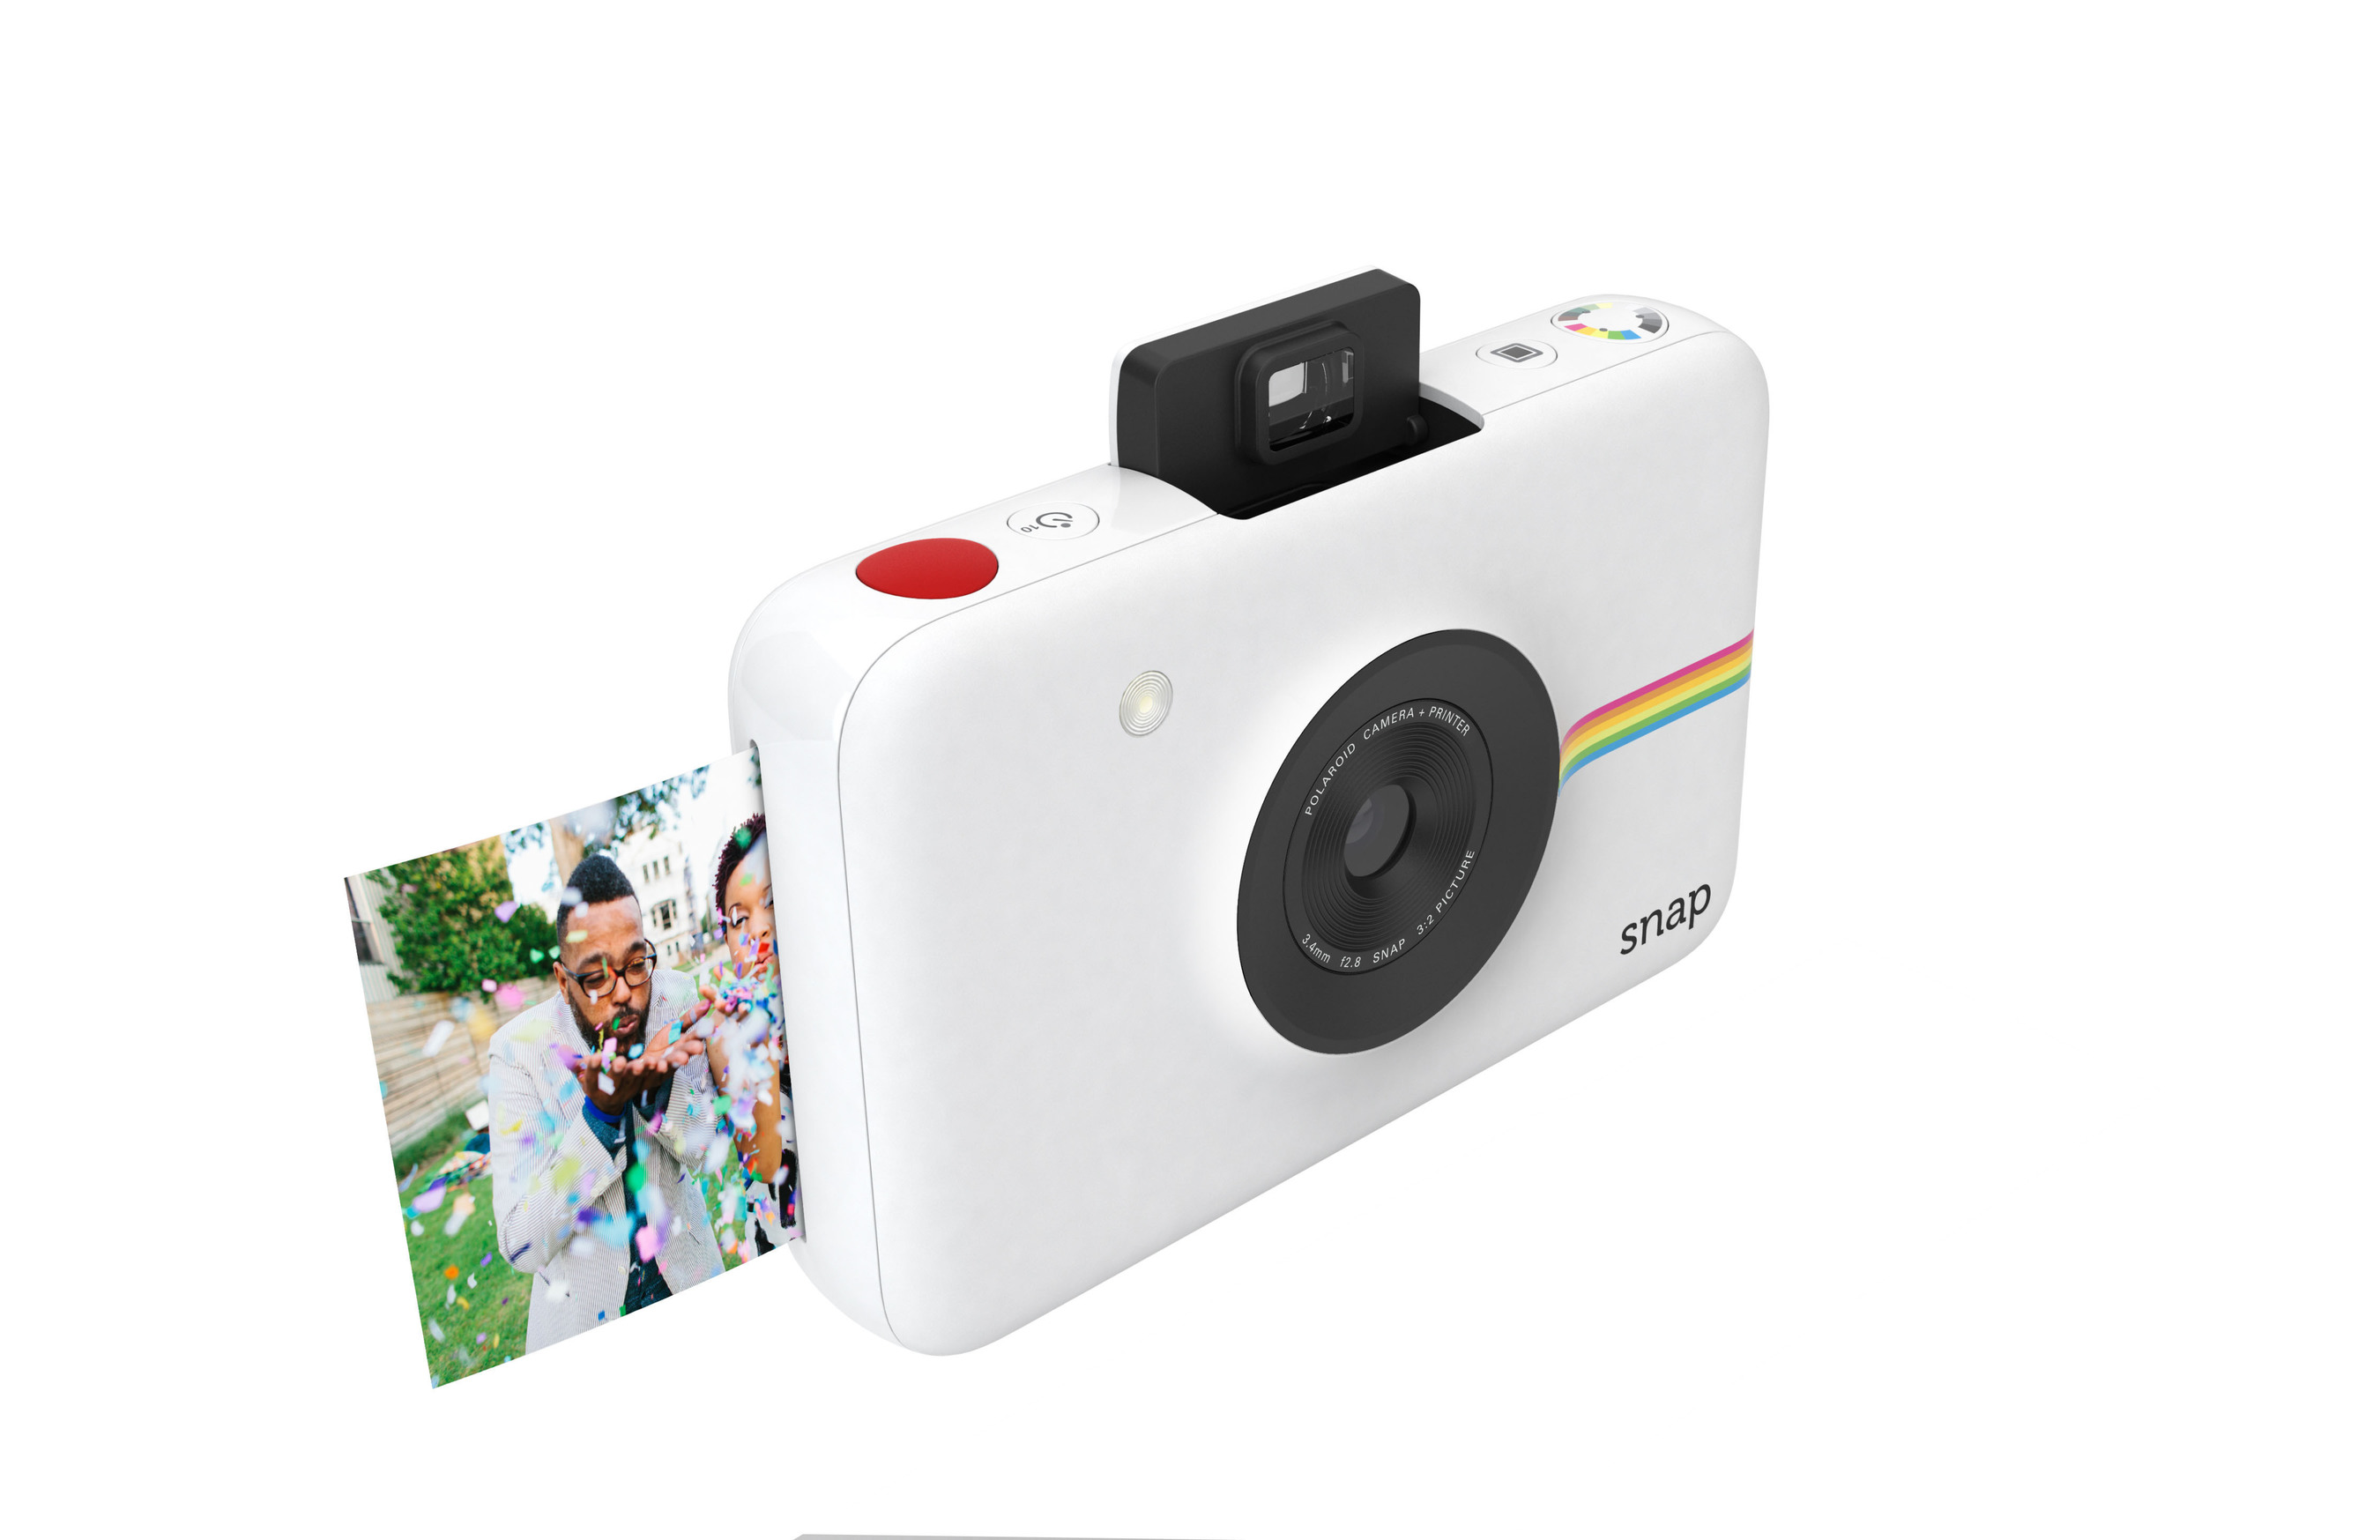 Share the Fun - The Polaroid Snap Instant Digital Camera Is Now Available in the US and UK